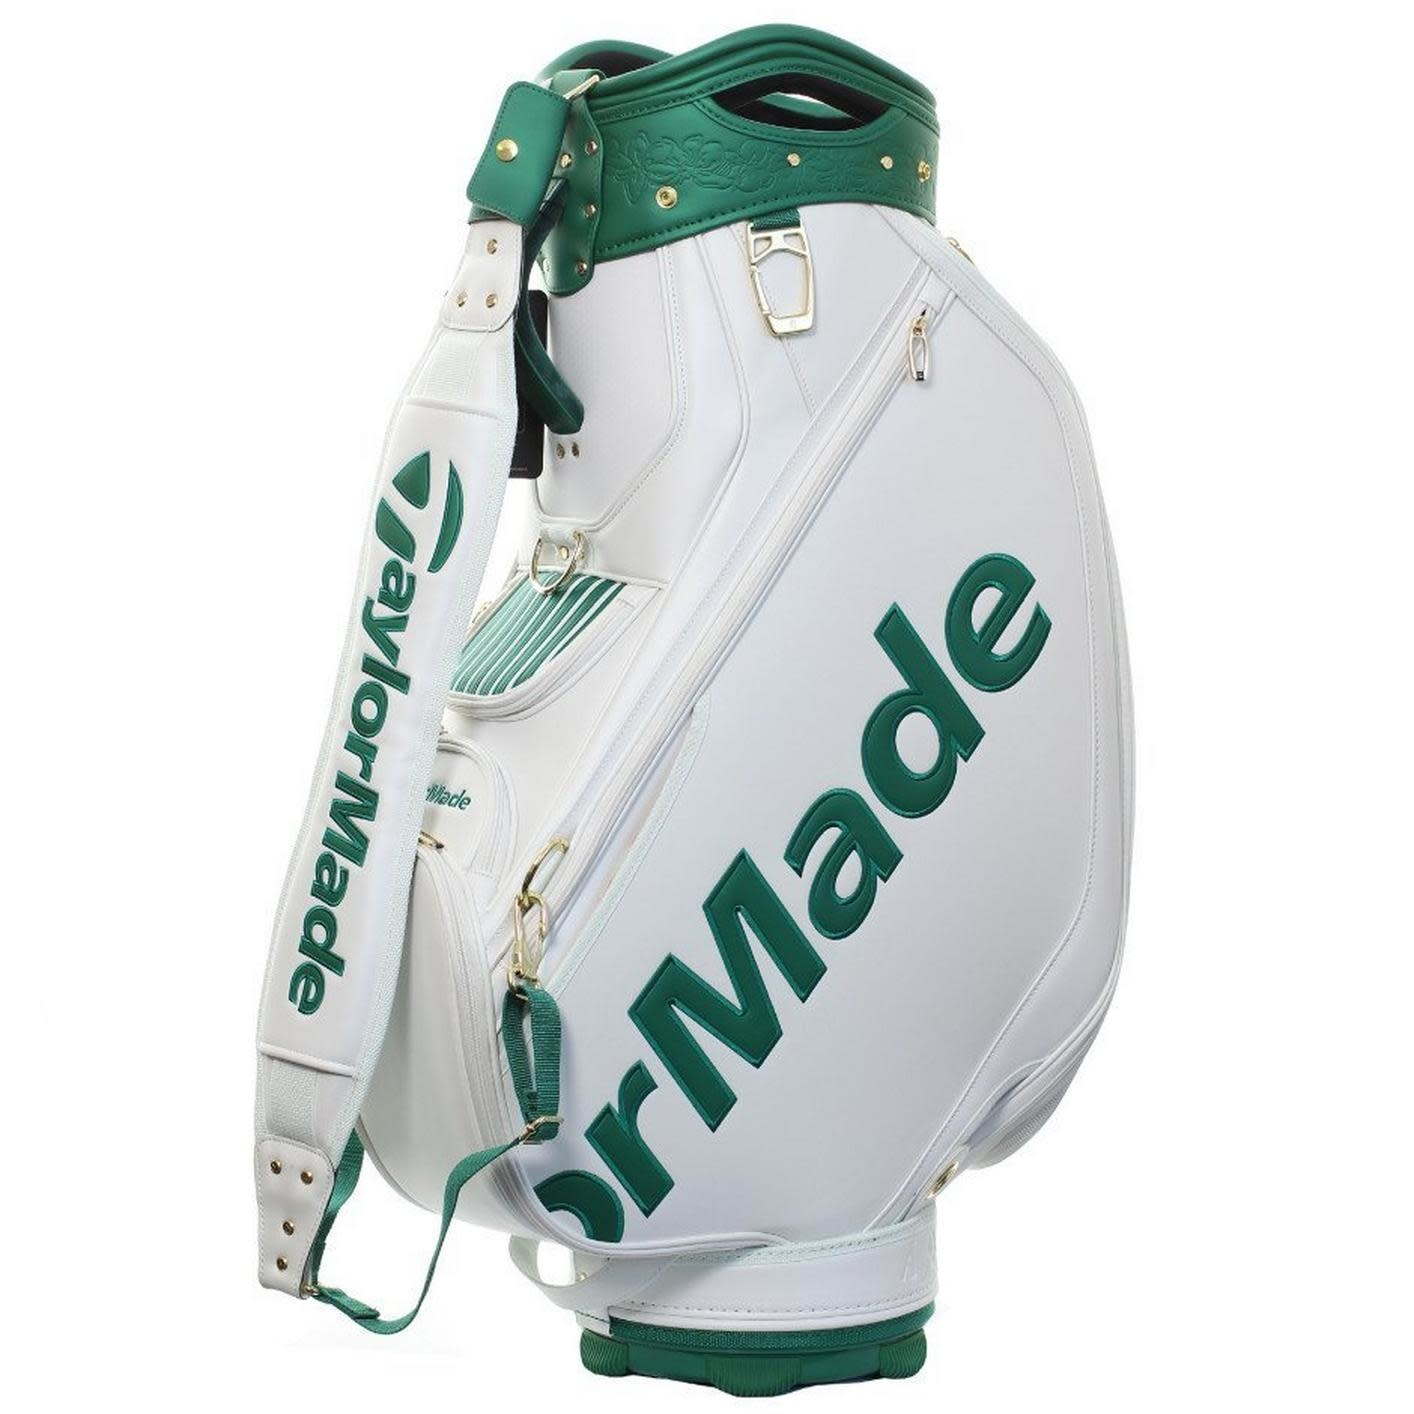 TaylorMade Bag - Masters 2020 Staff Bag